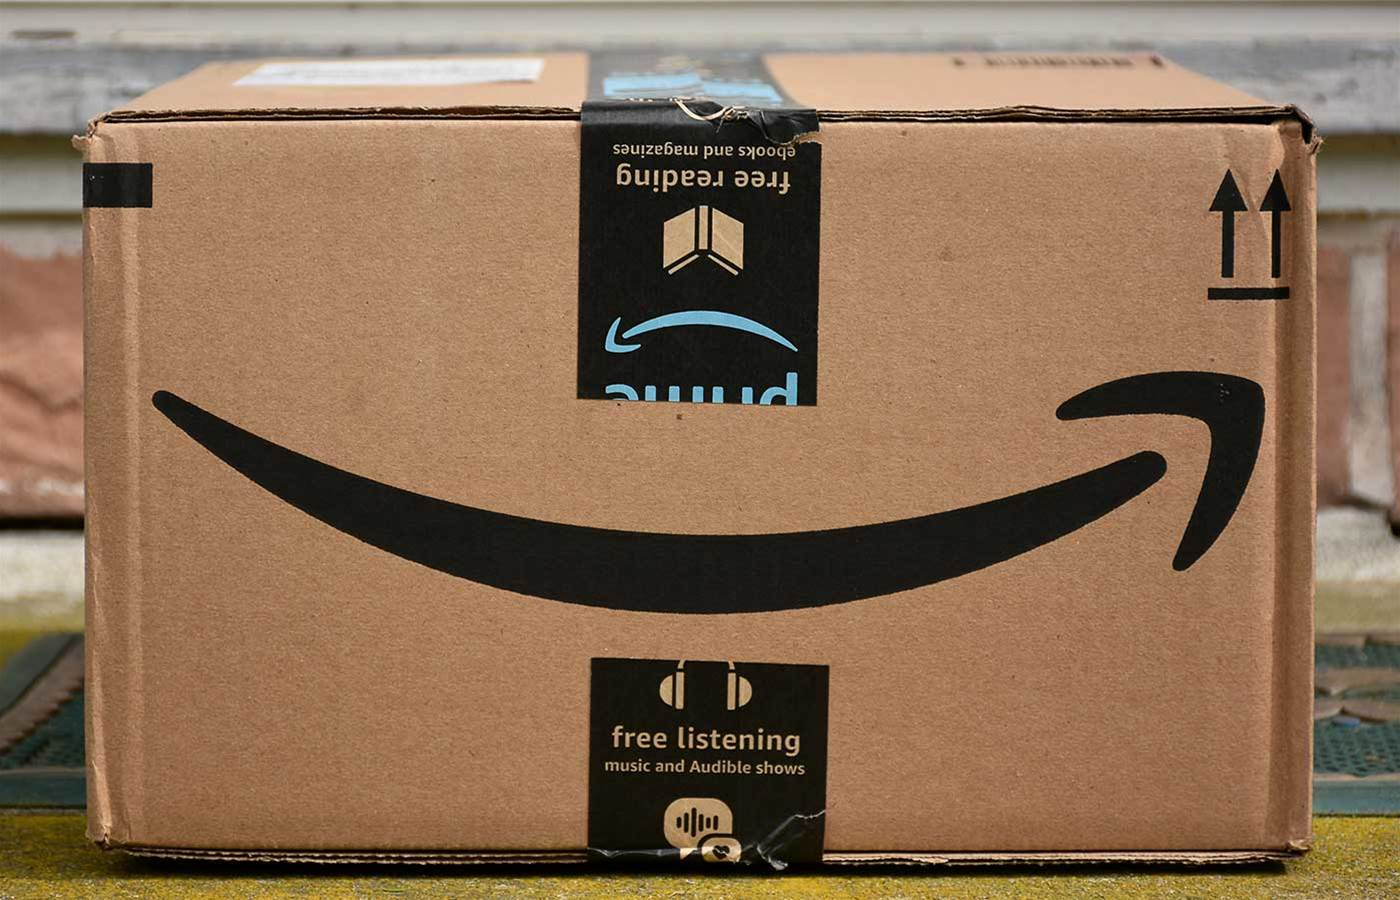 Amazon brings third-party delivery services to Australia